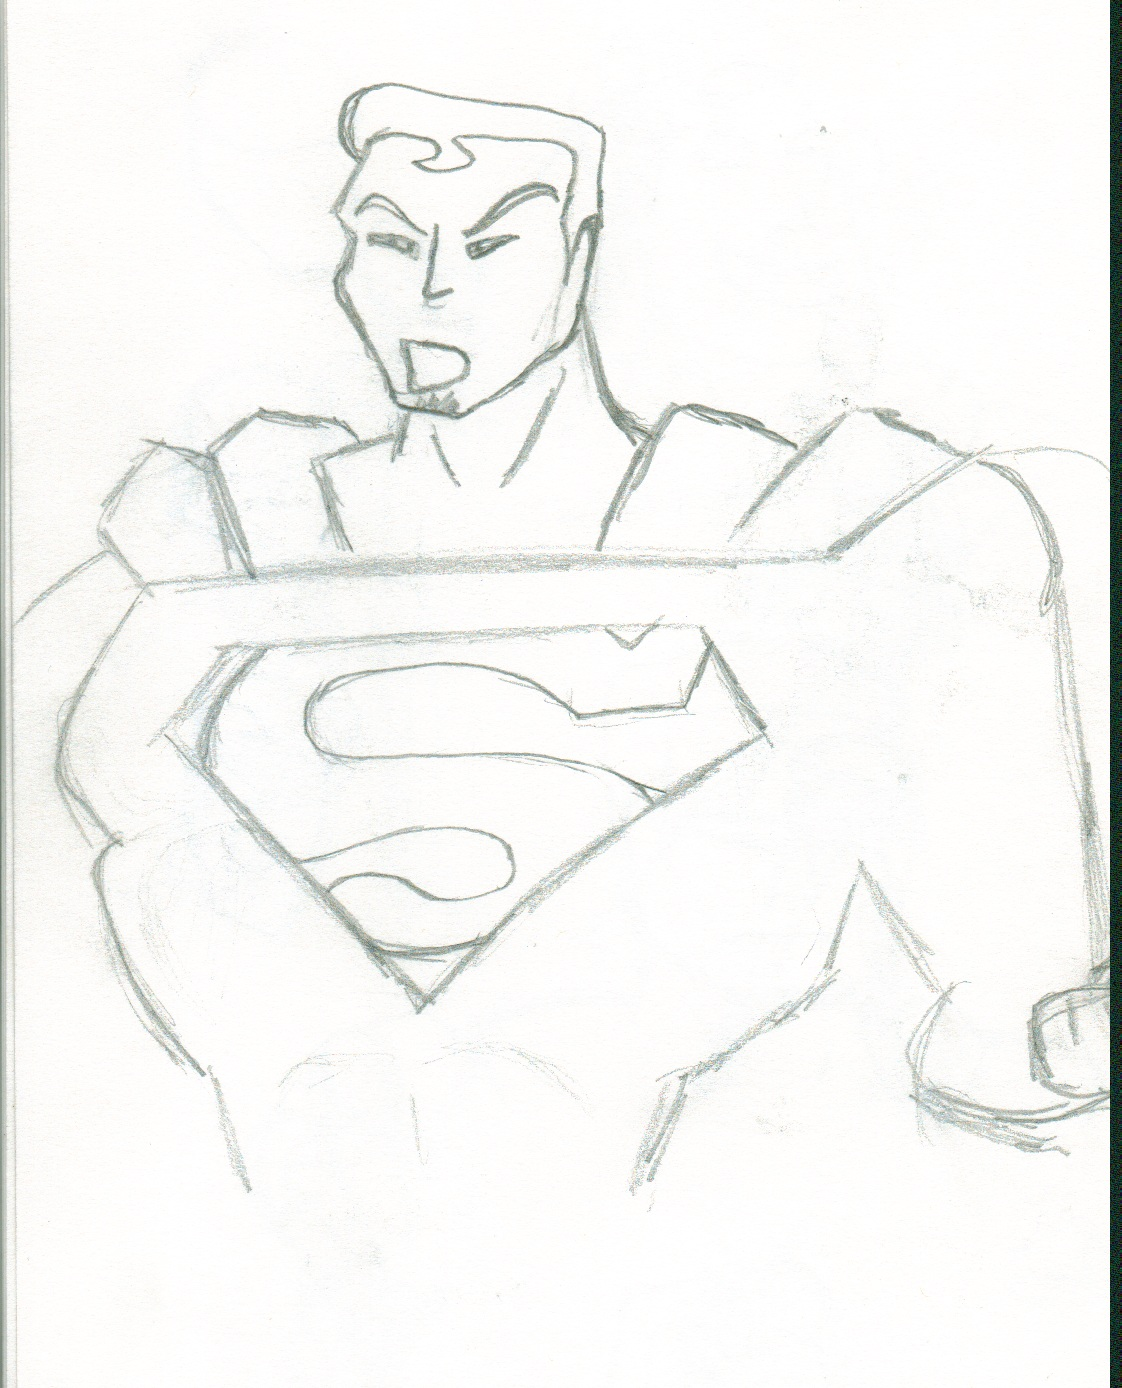 Sean S- D: Character Exercise: Superman